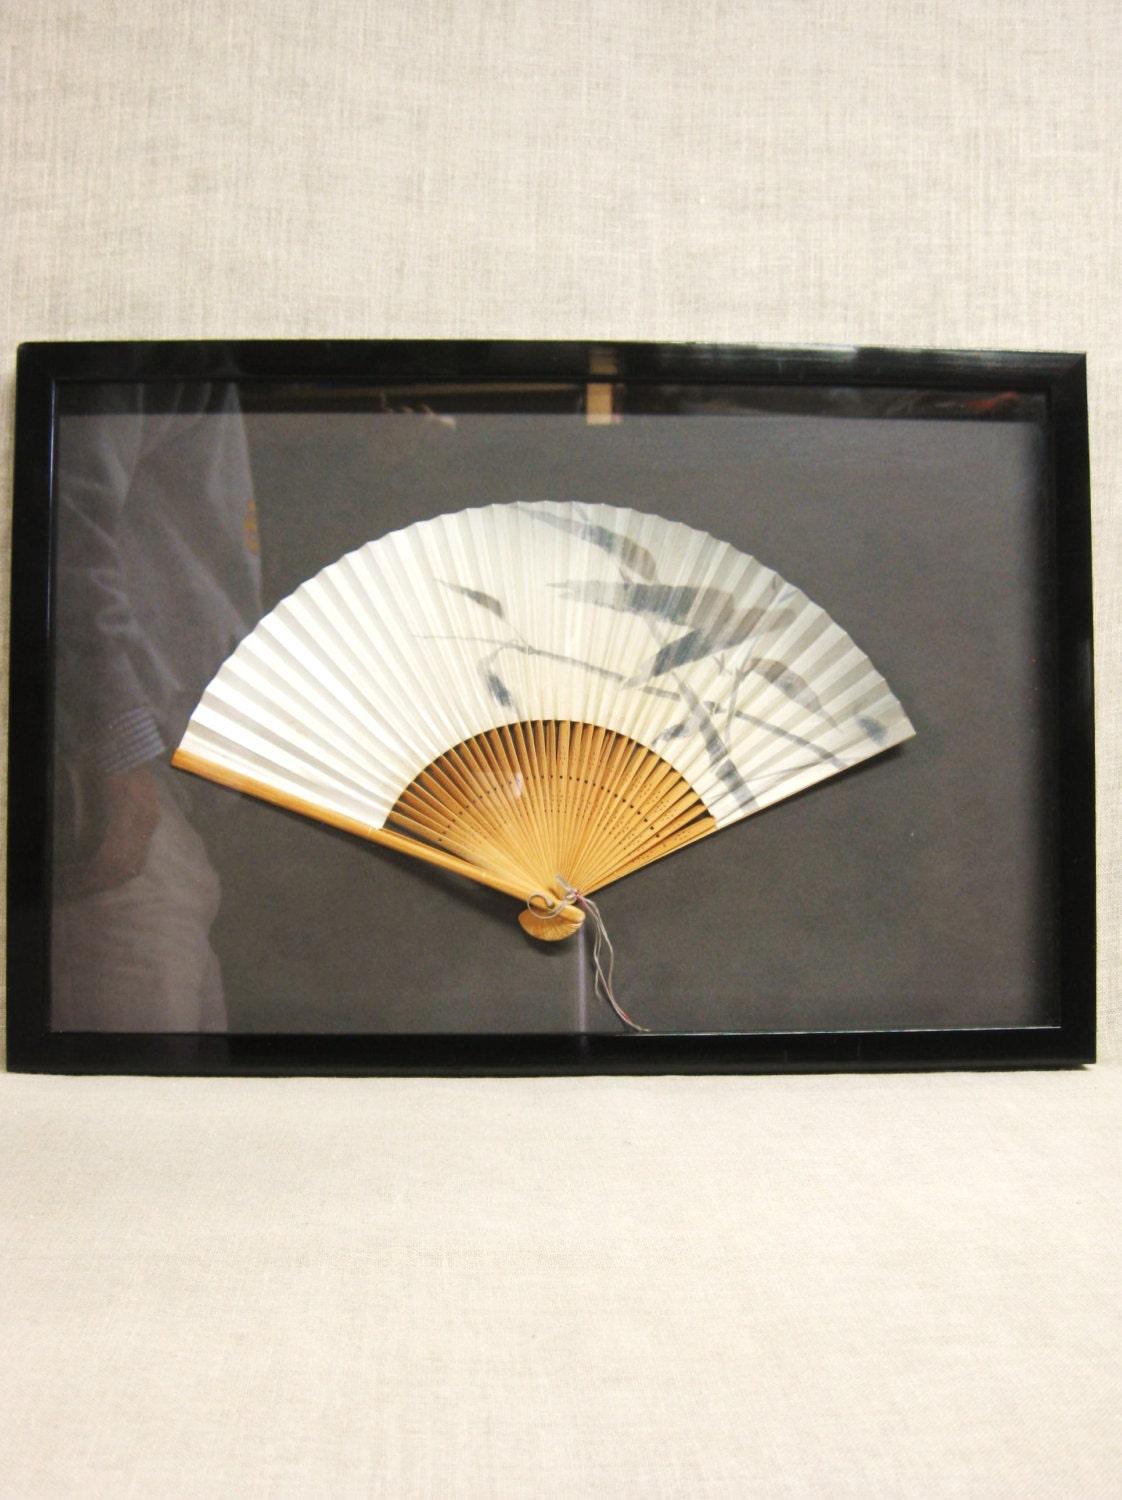 Vintage Framed Asian Fan Hand Fan Wall Decor Shadow Box